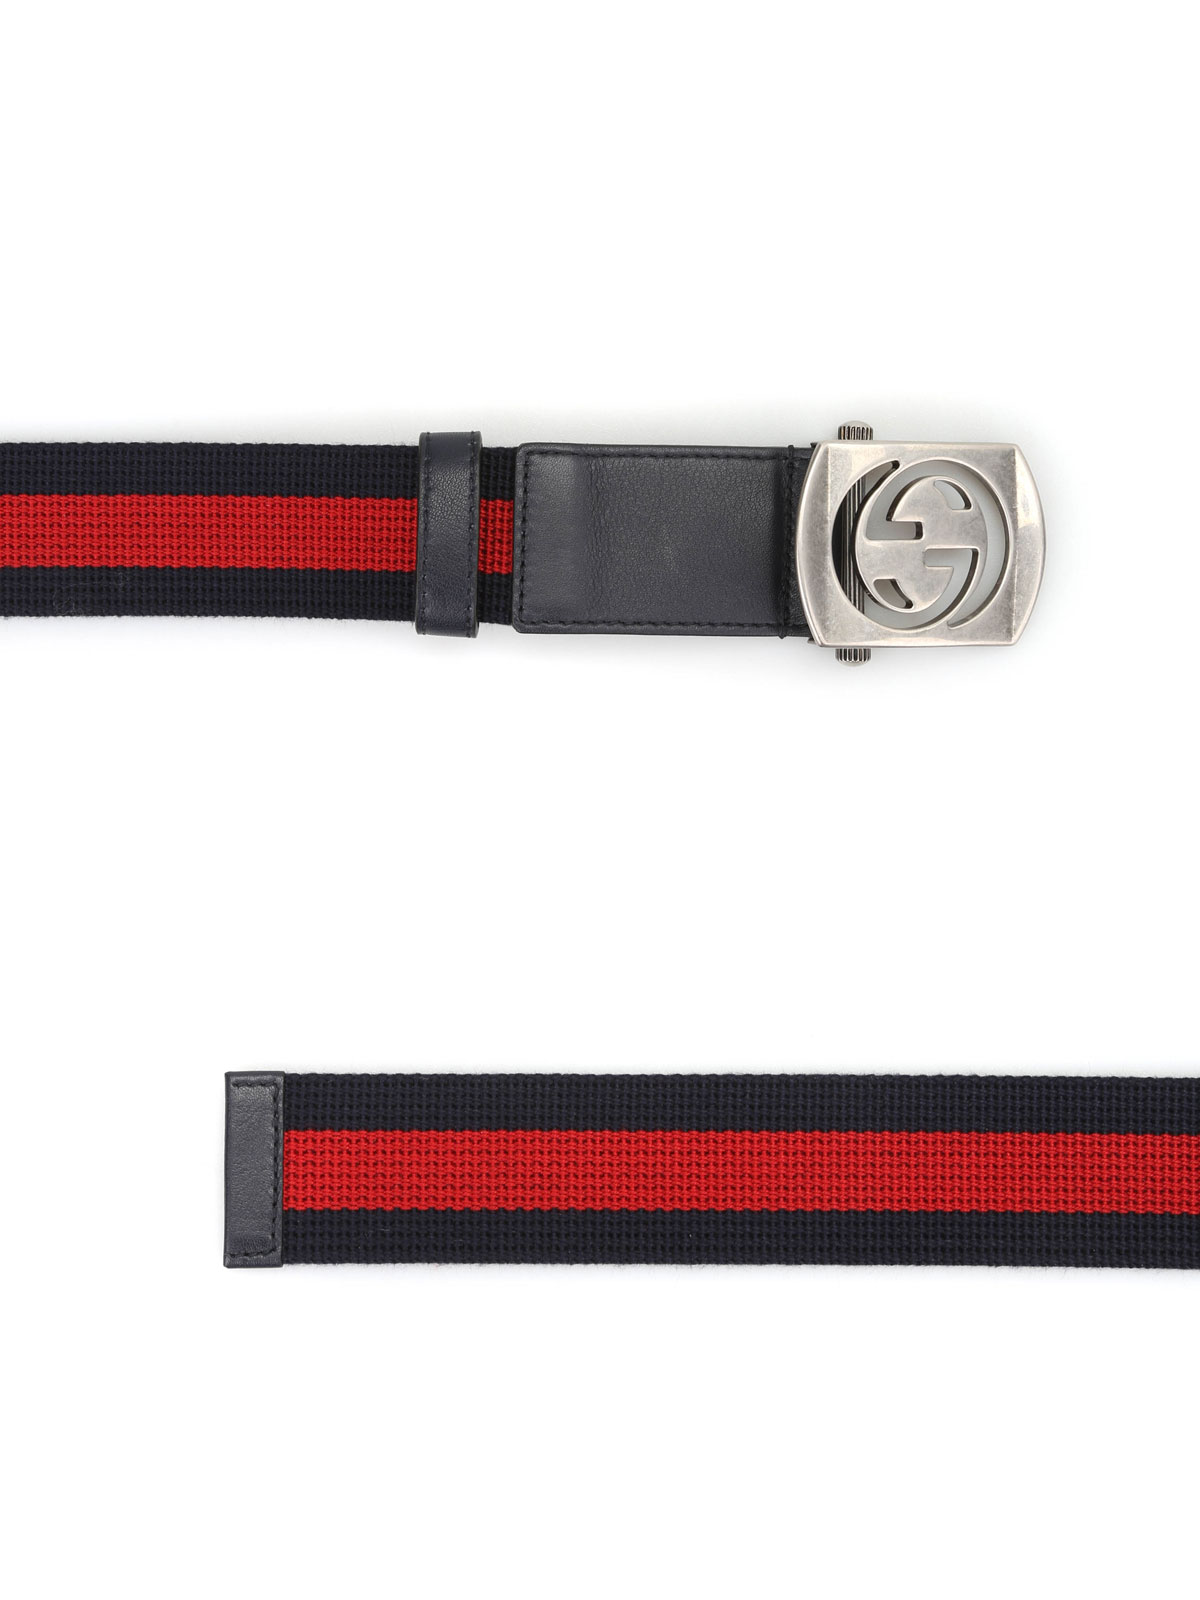 how to change gucci belt buckle